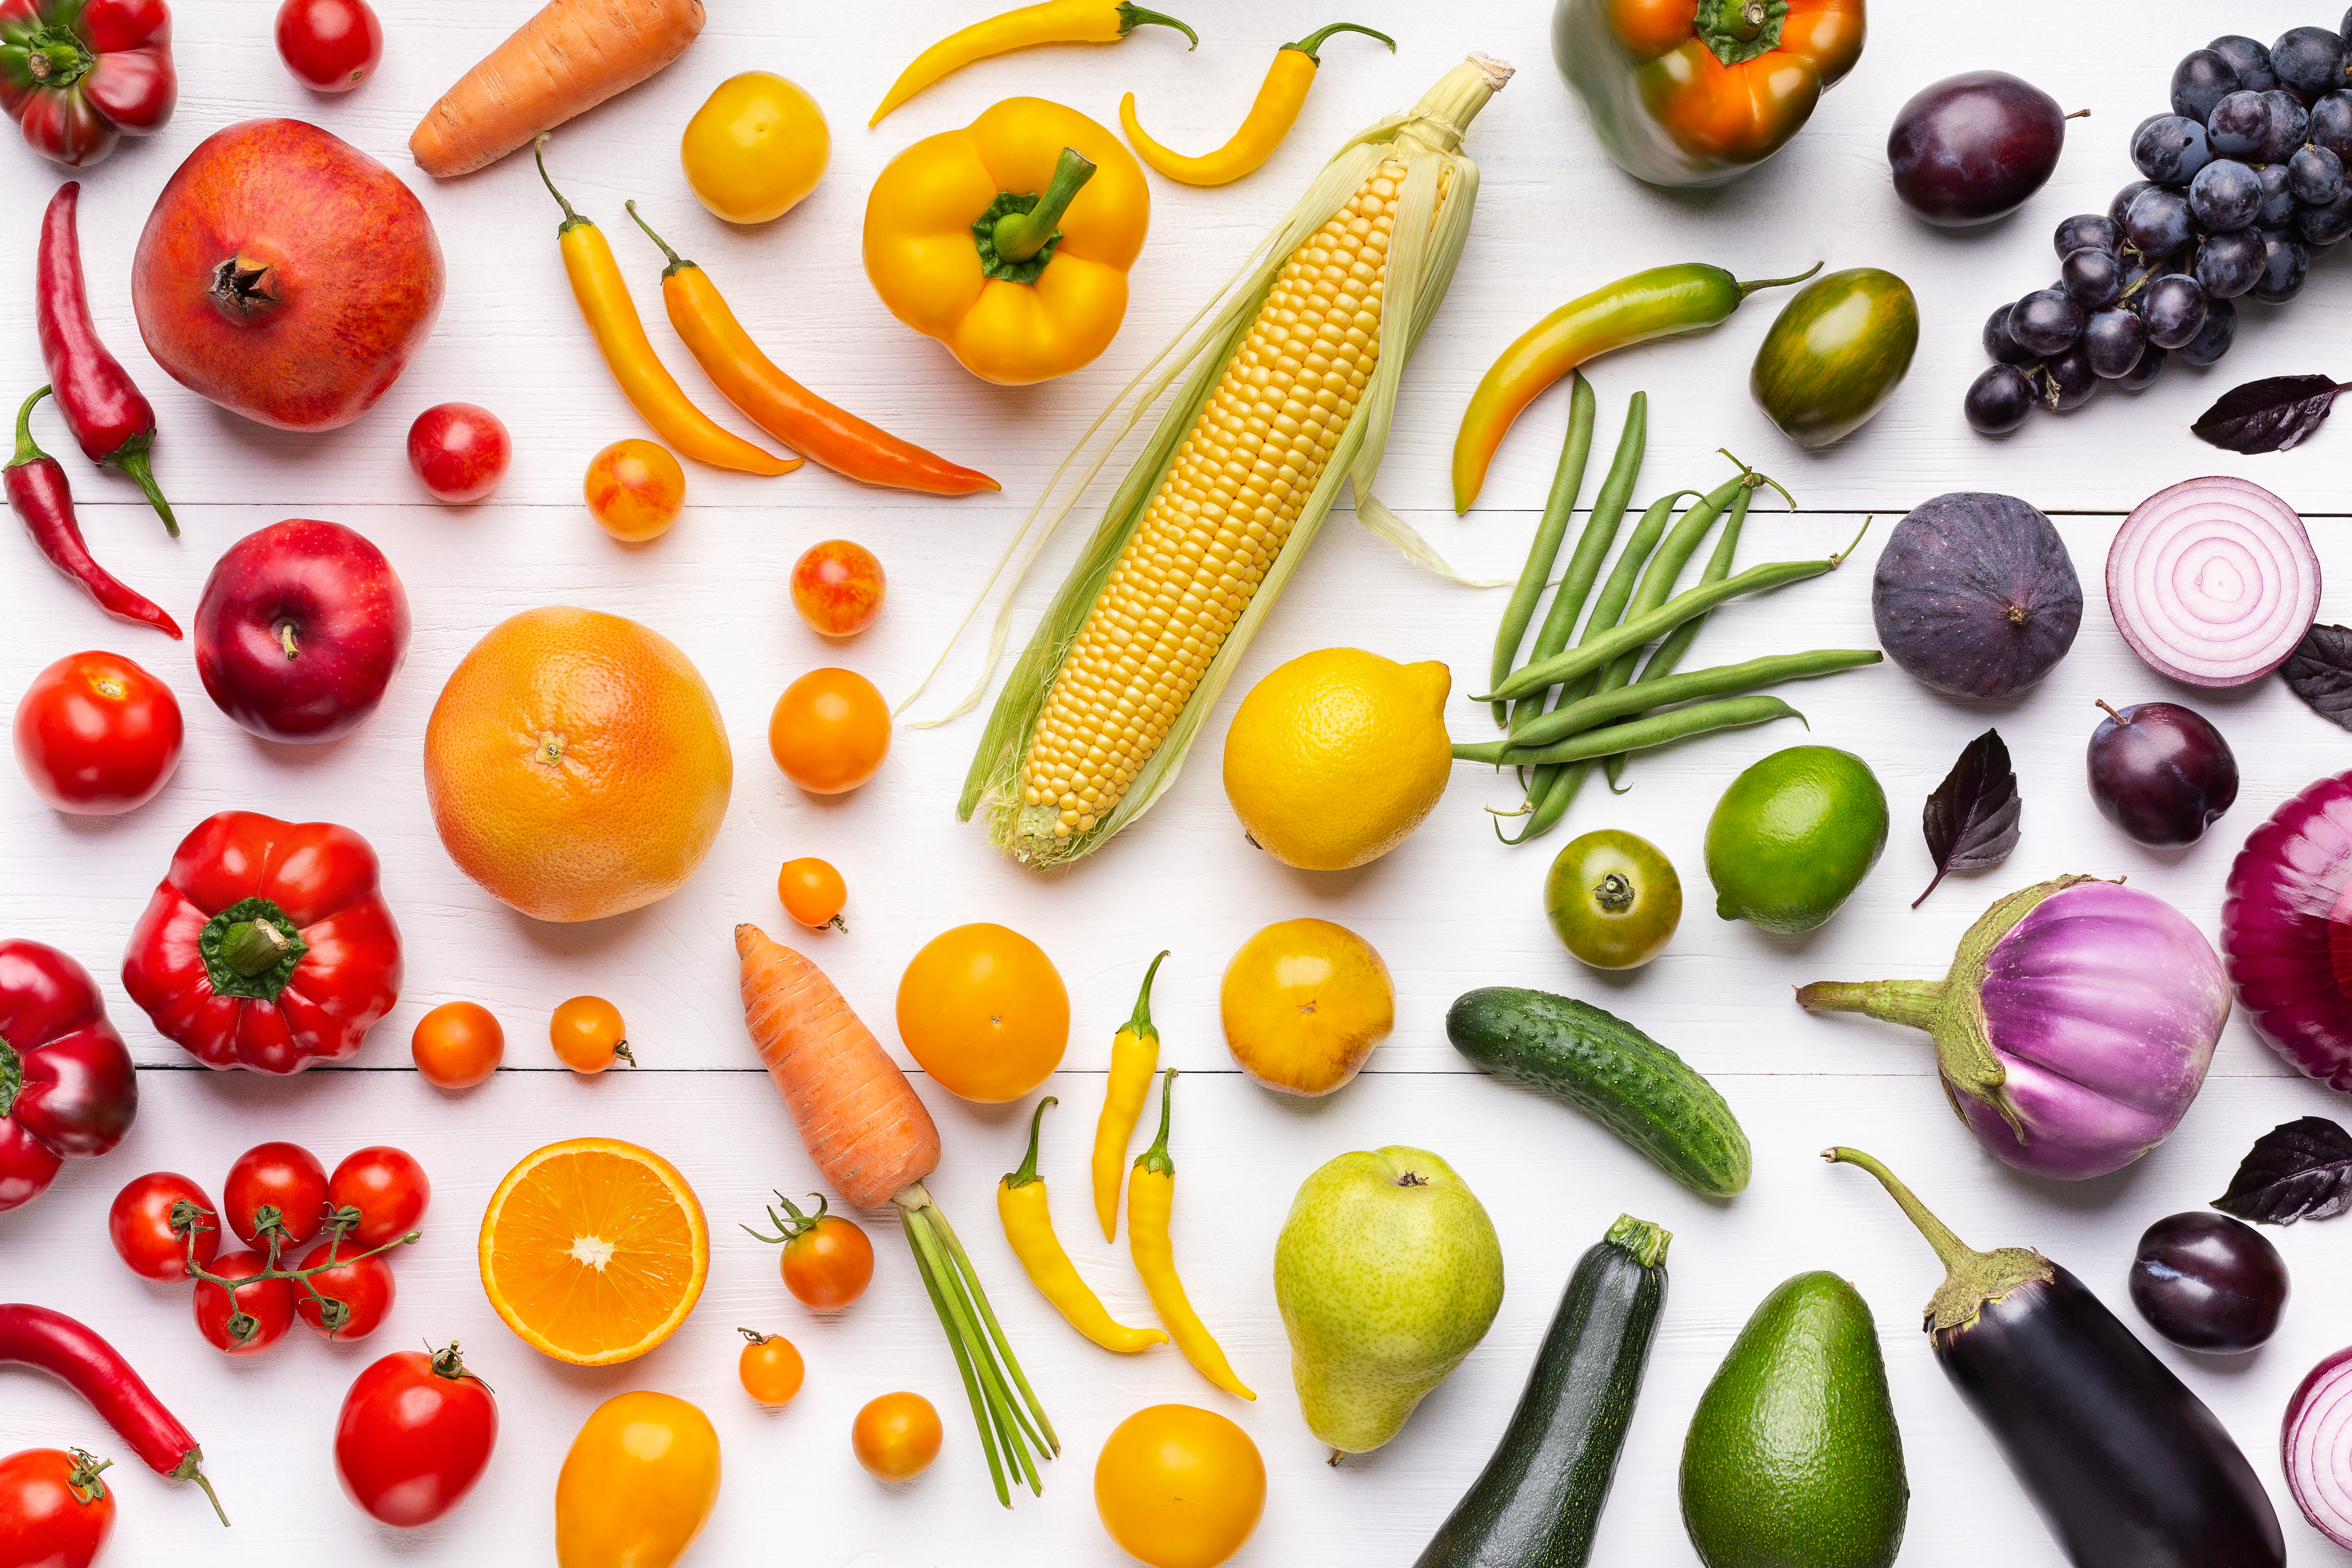 composition-of-fruits-and-vegetables-in-rainbow-co-82DUL49